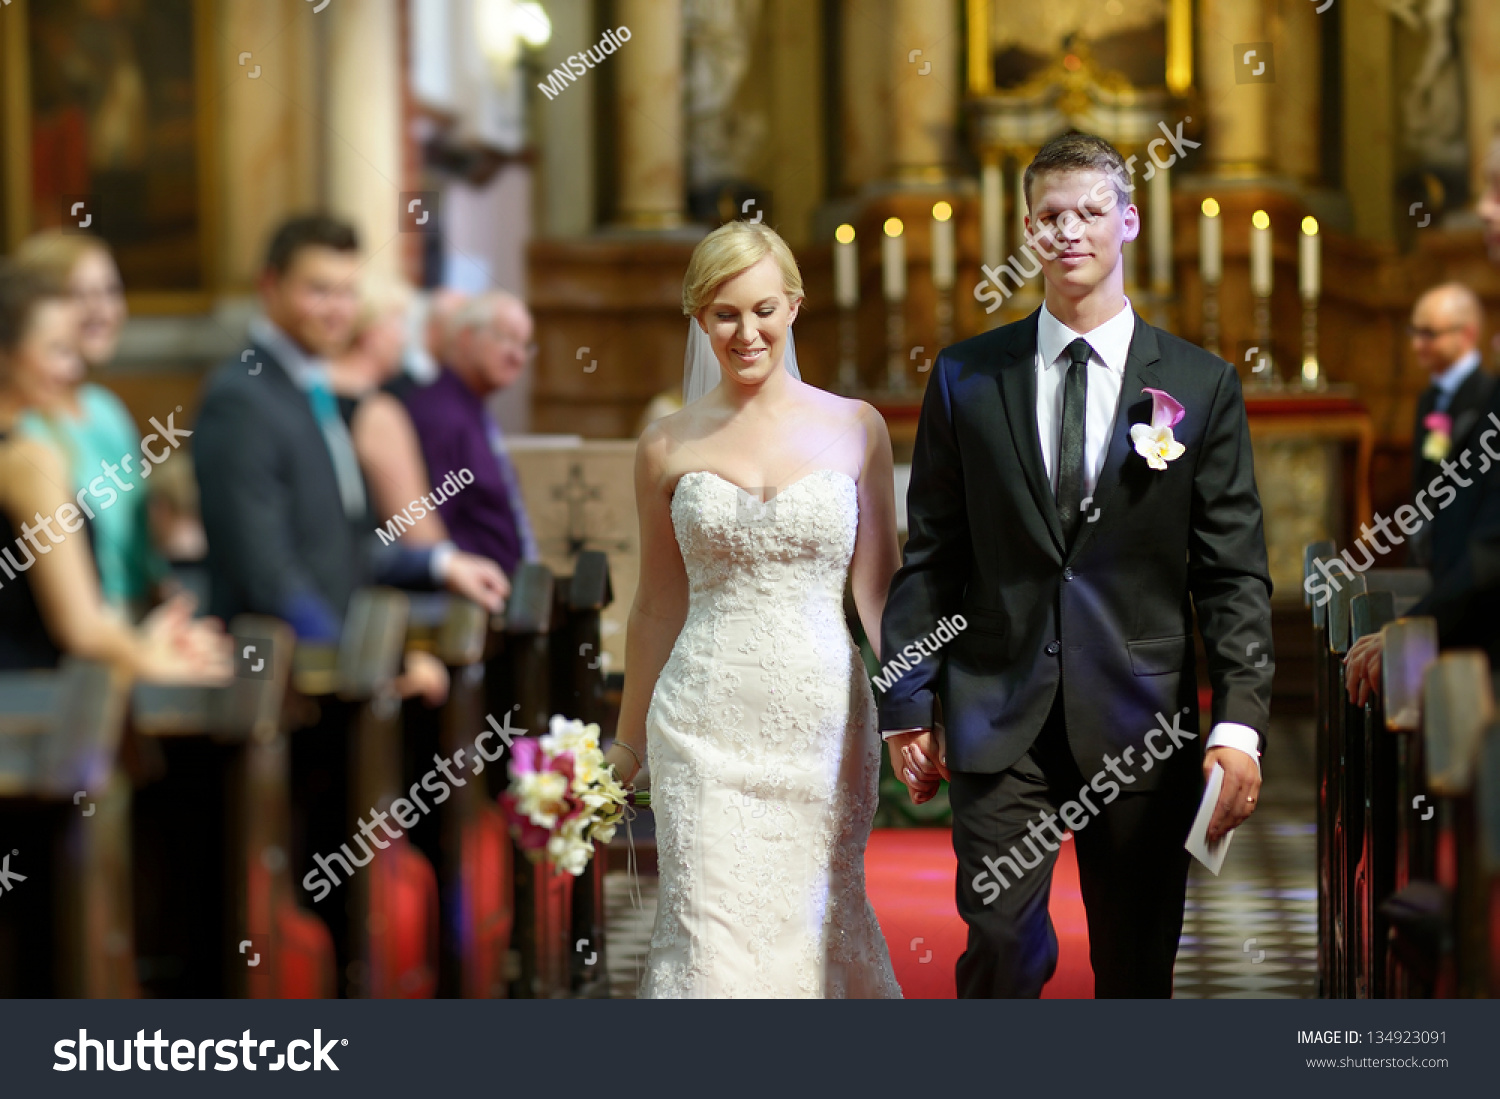 Bride And Groom Leaving The Church After A Wedding